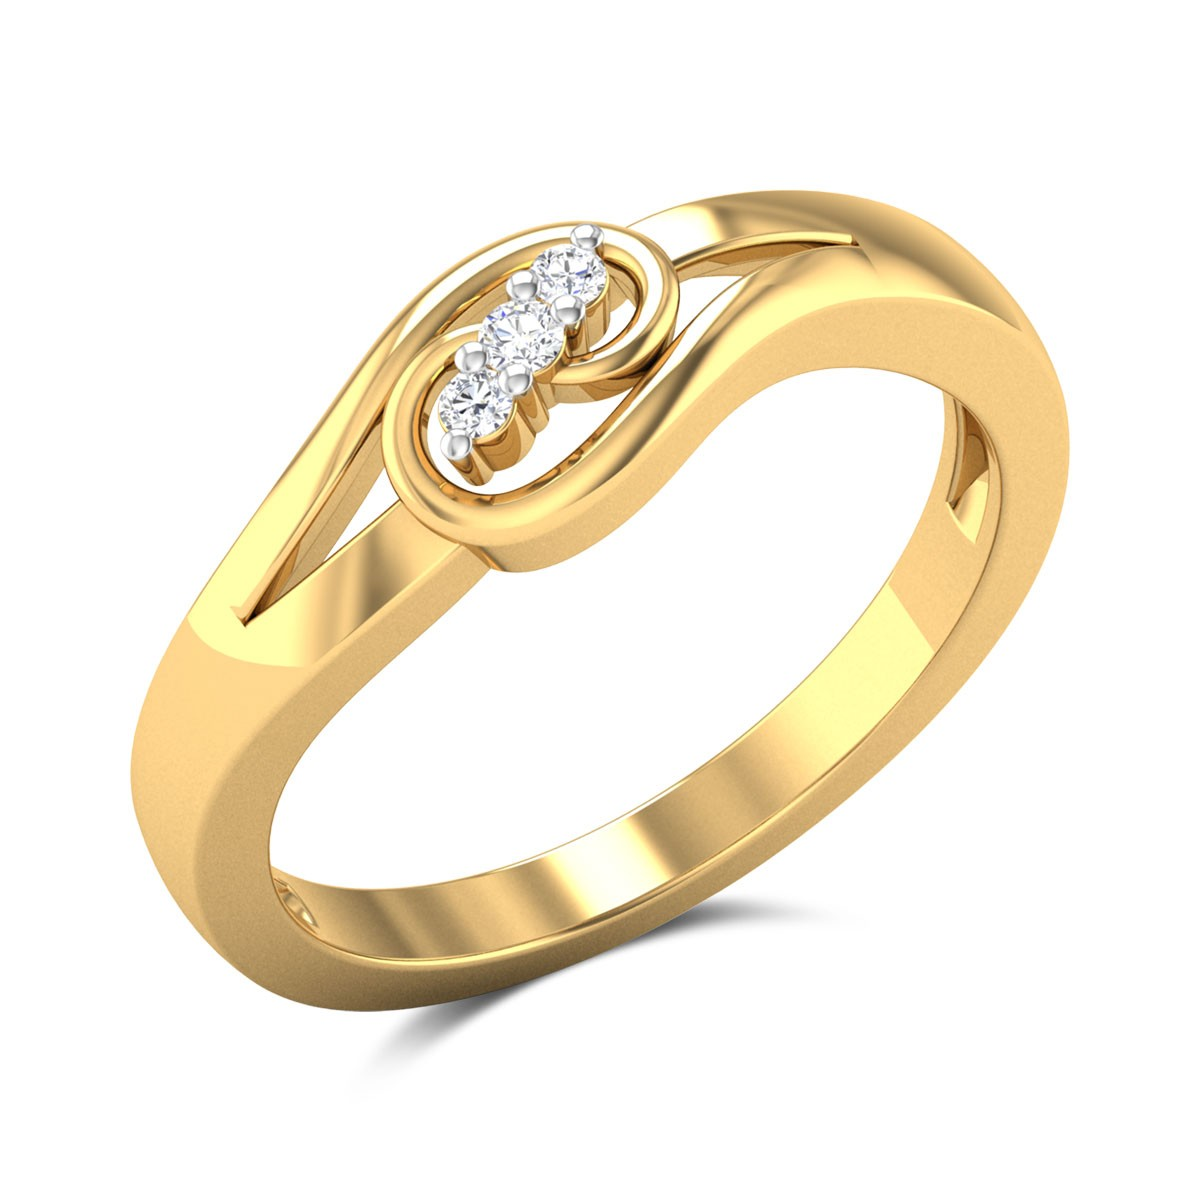 Suncrisp Smile Diamond Ring